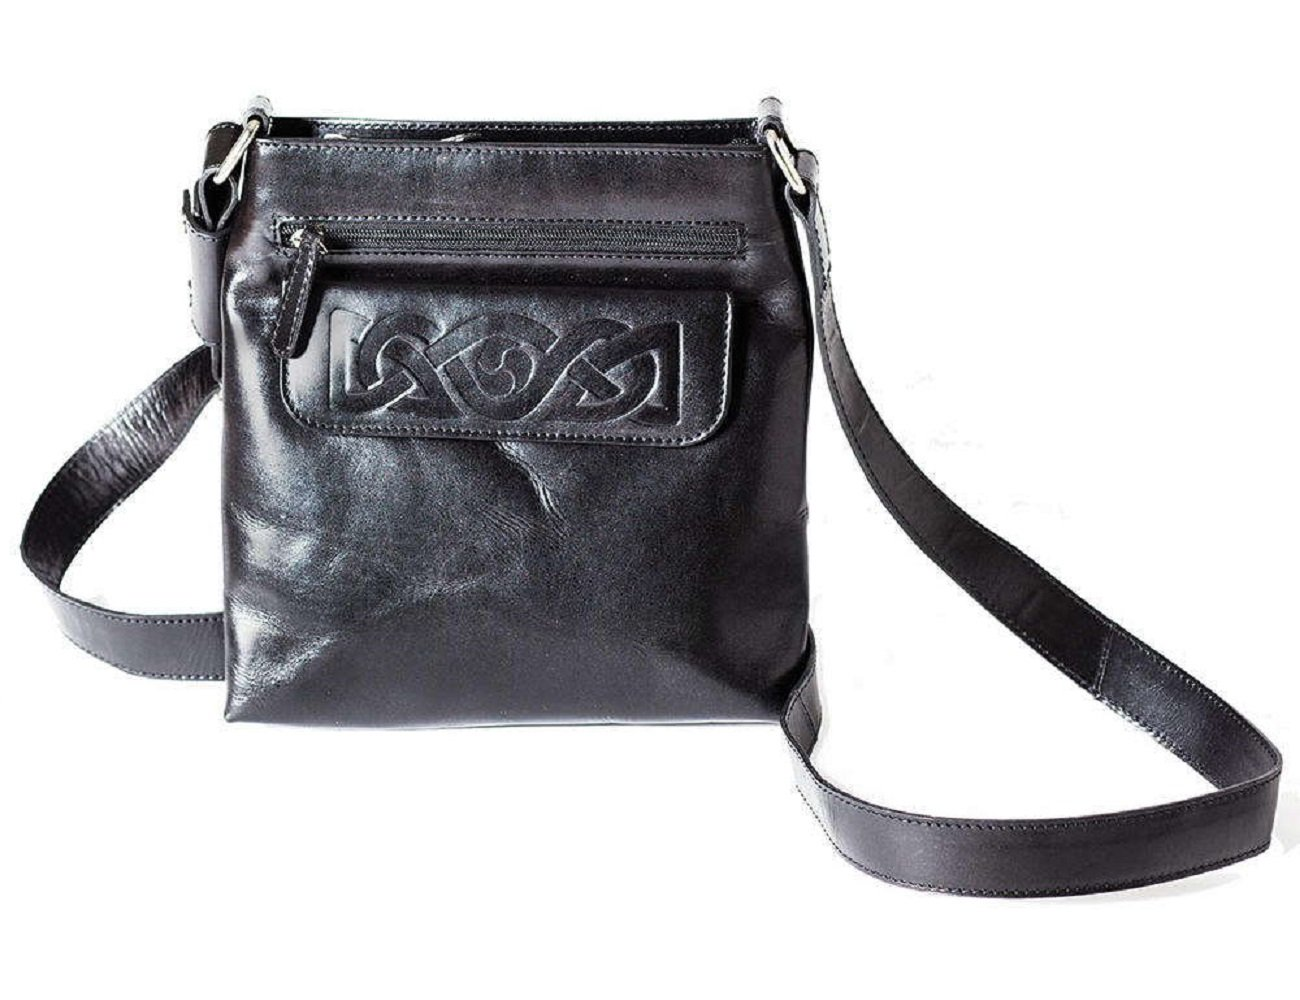 Crossbody Bags for Women Black Celtic Embossed Leather Irish Made by Biddy Murphy